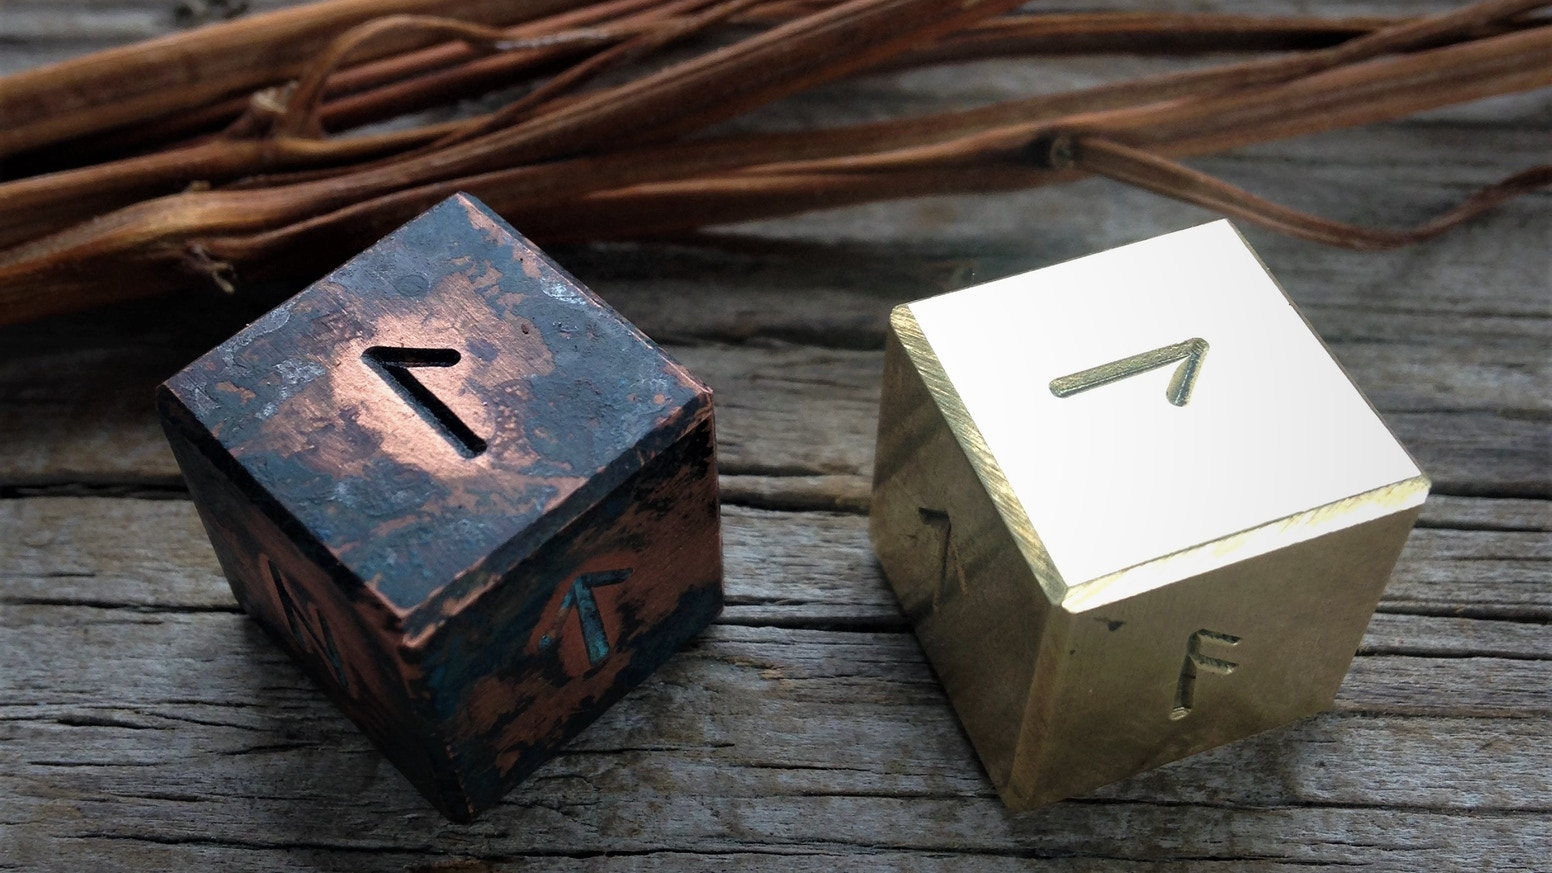 Runic Dice and Iron Runes for Gaming and Spellcraft